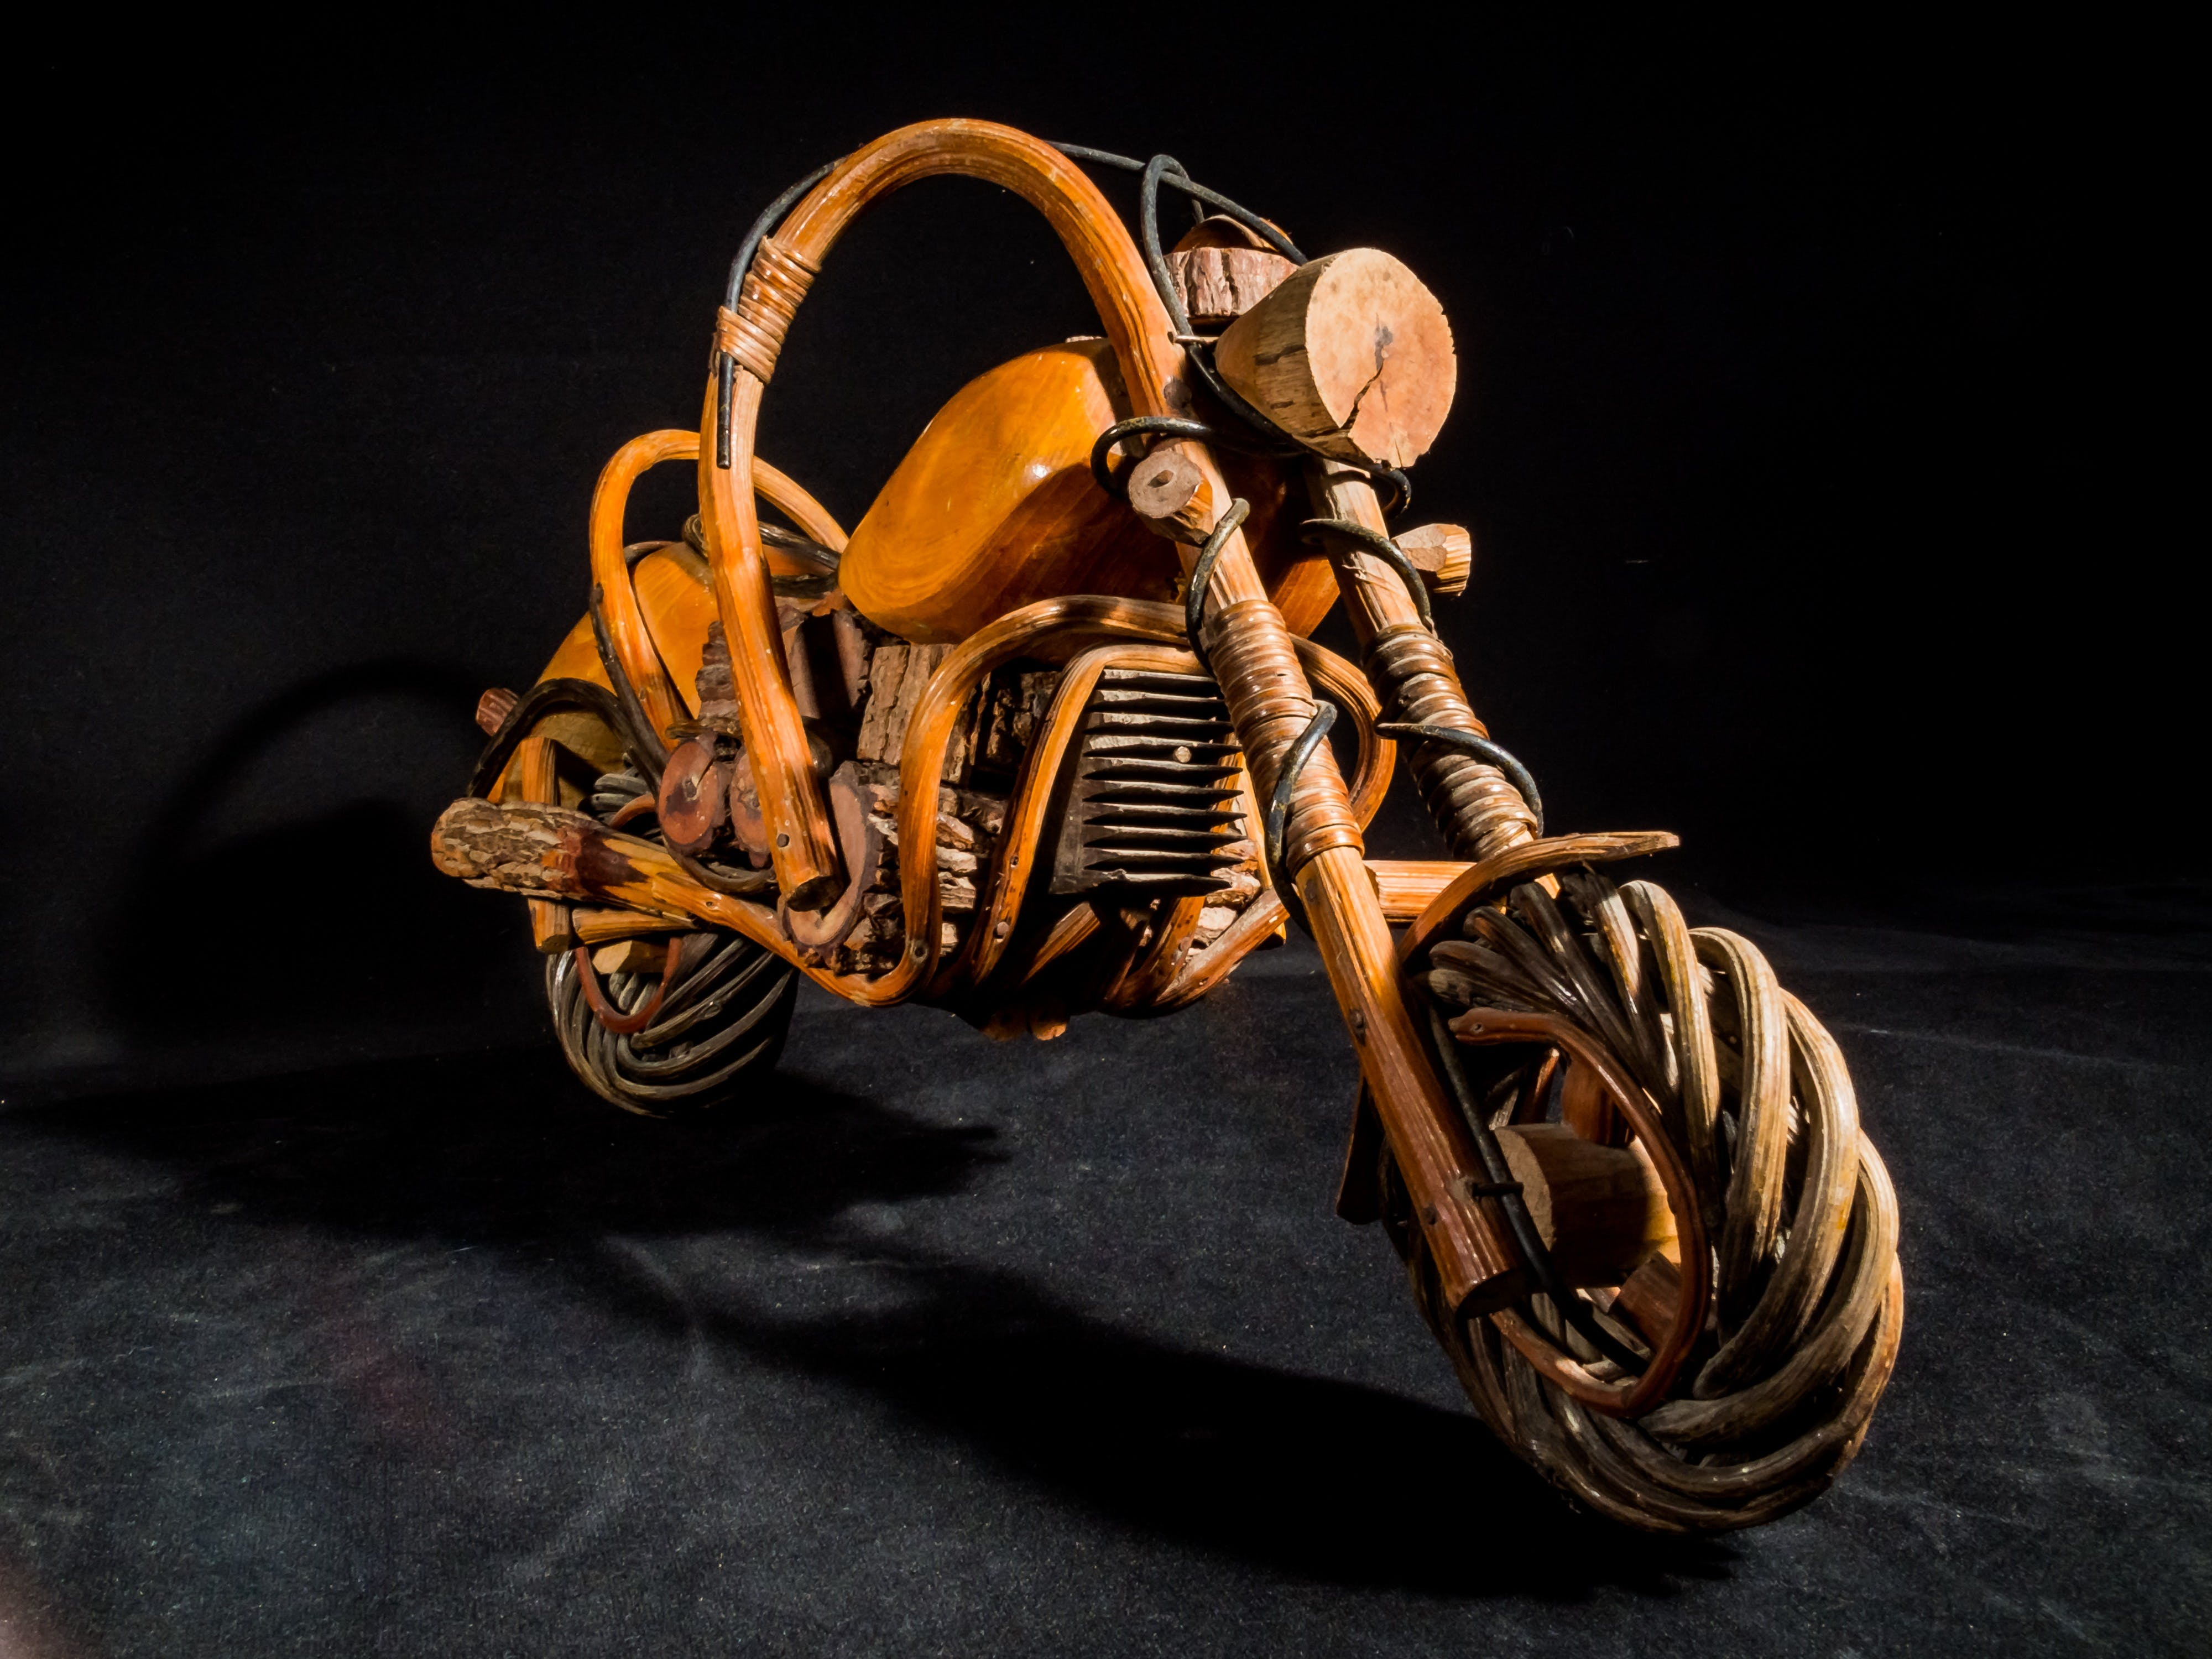 Brown Wooden Chopper Motorcycle Scale Model